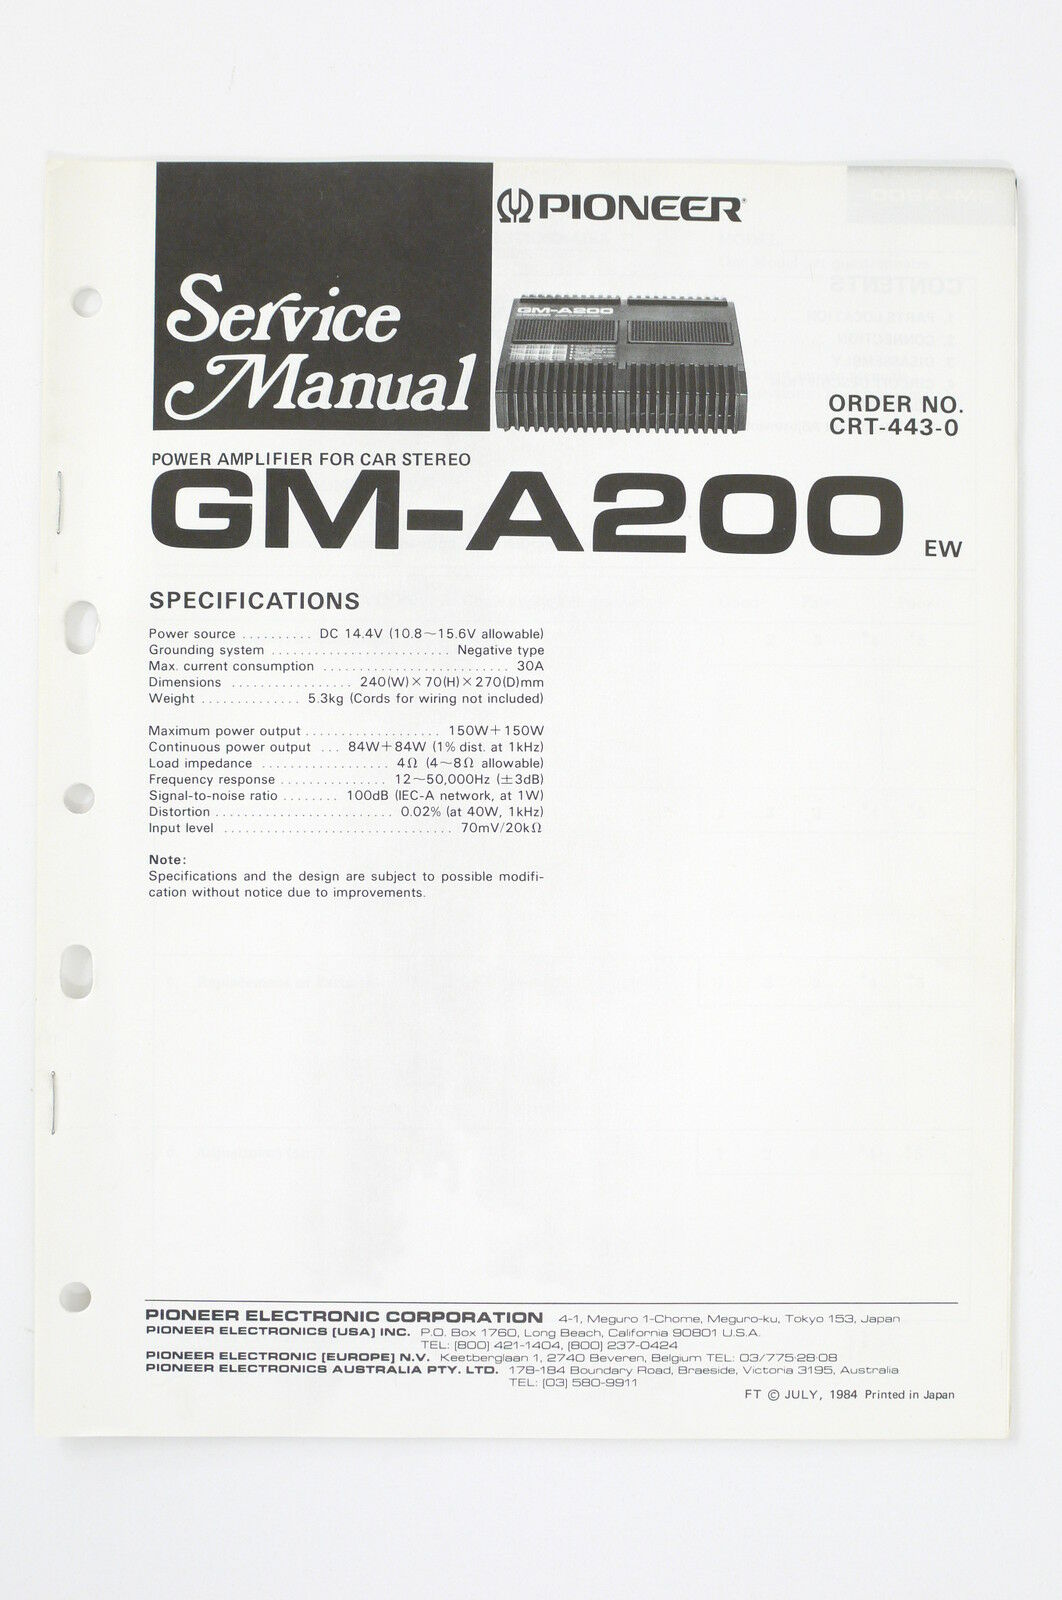 Pioneer Gm A200 Ew Car Amplifier Service Manual Wiring Diagram Japan 1 Of 1only Available